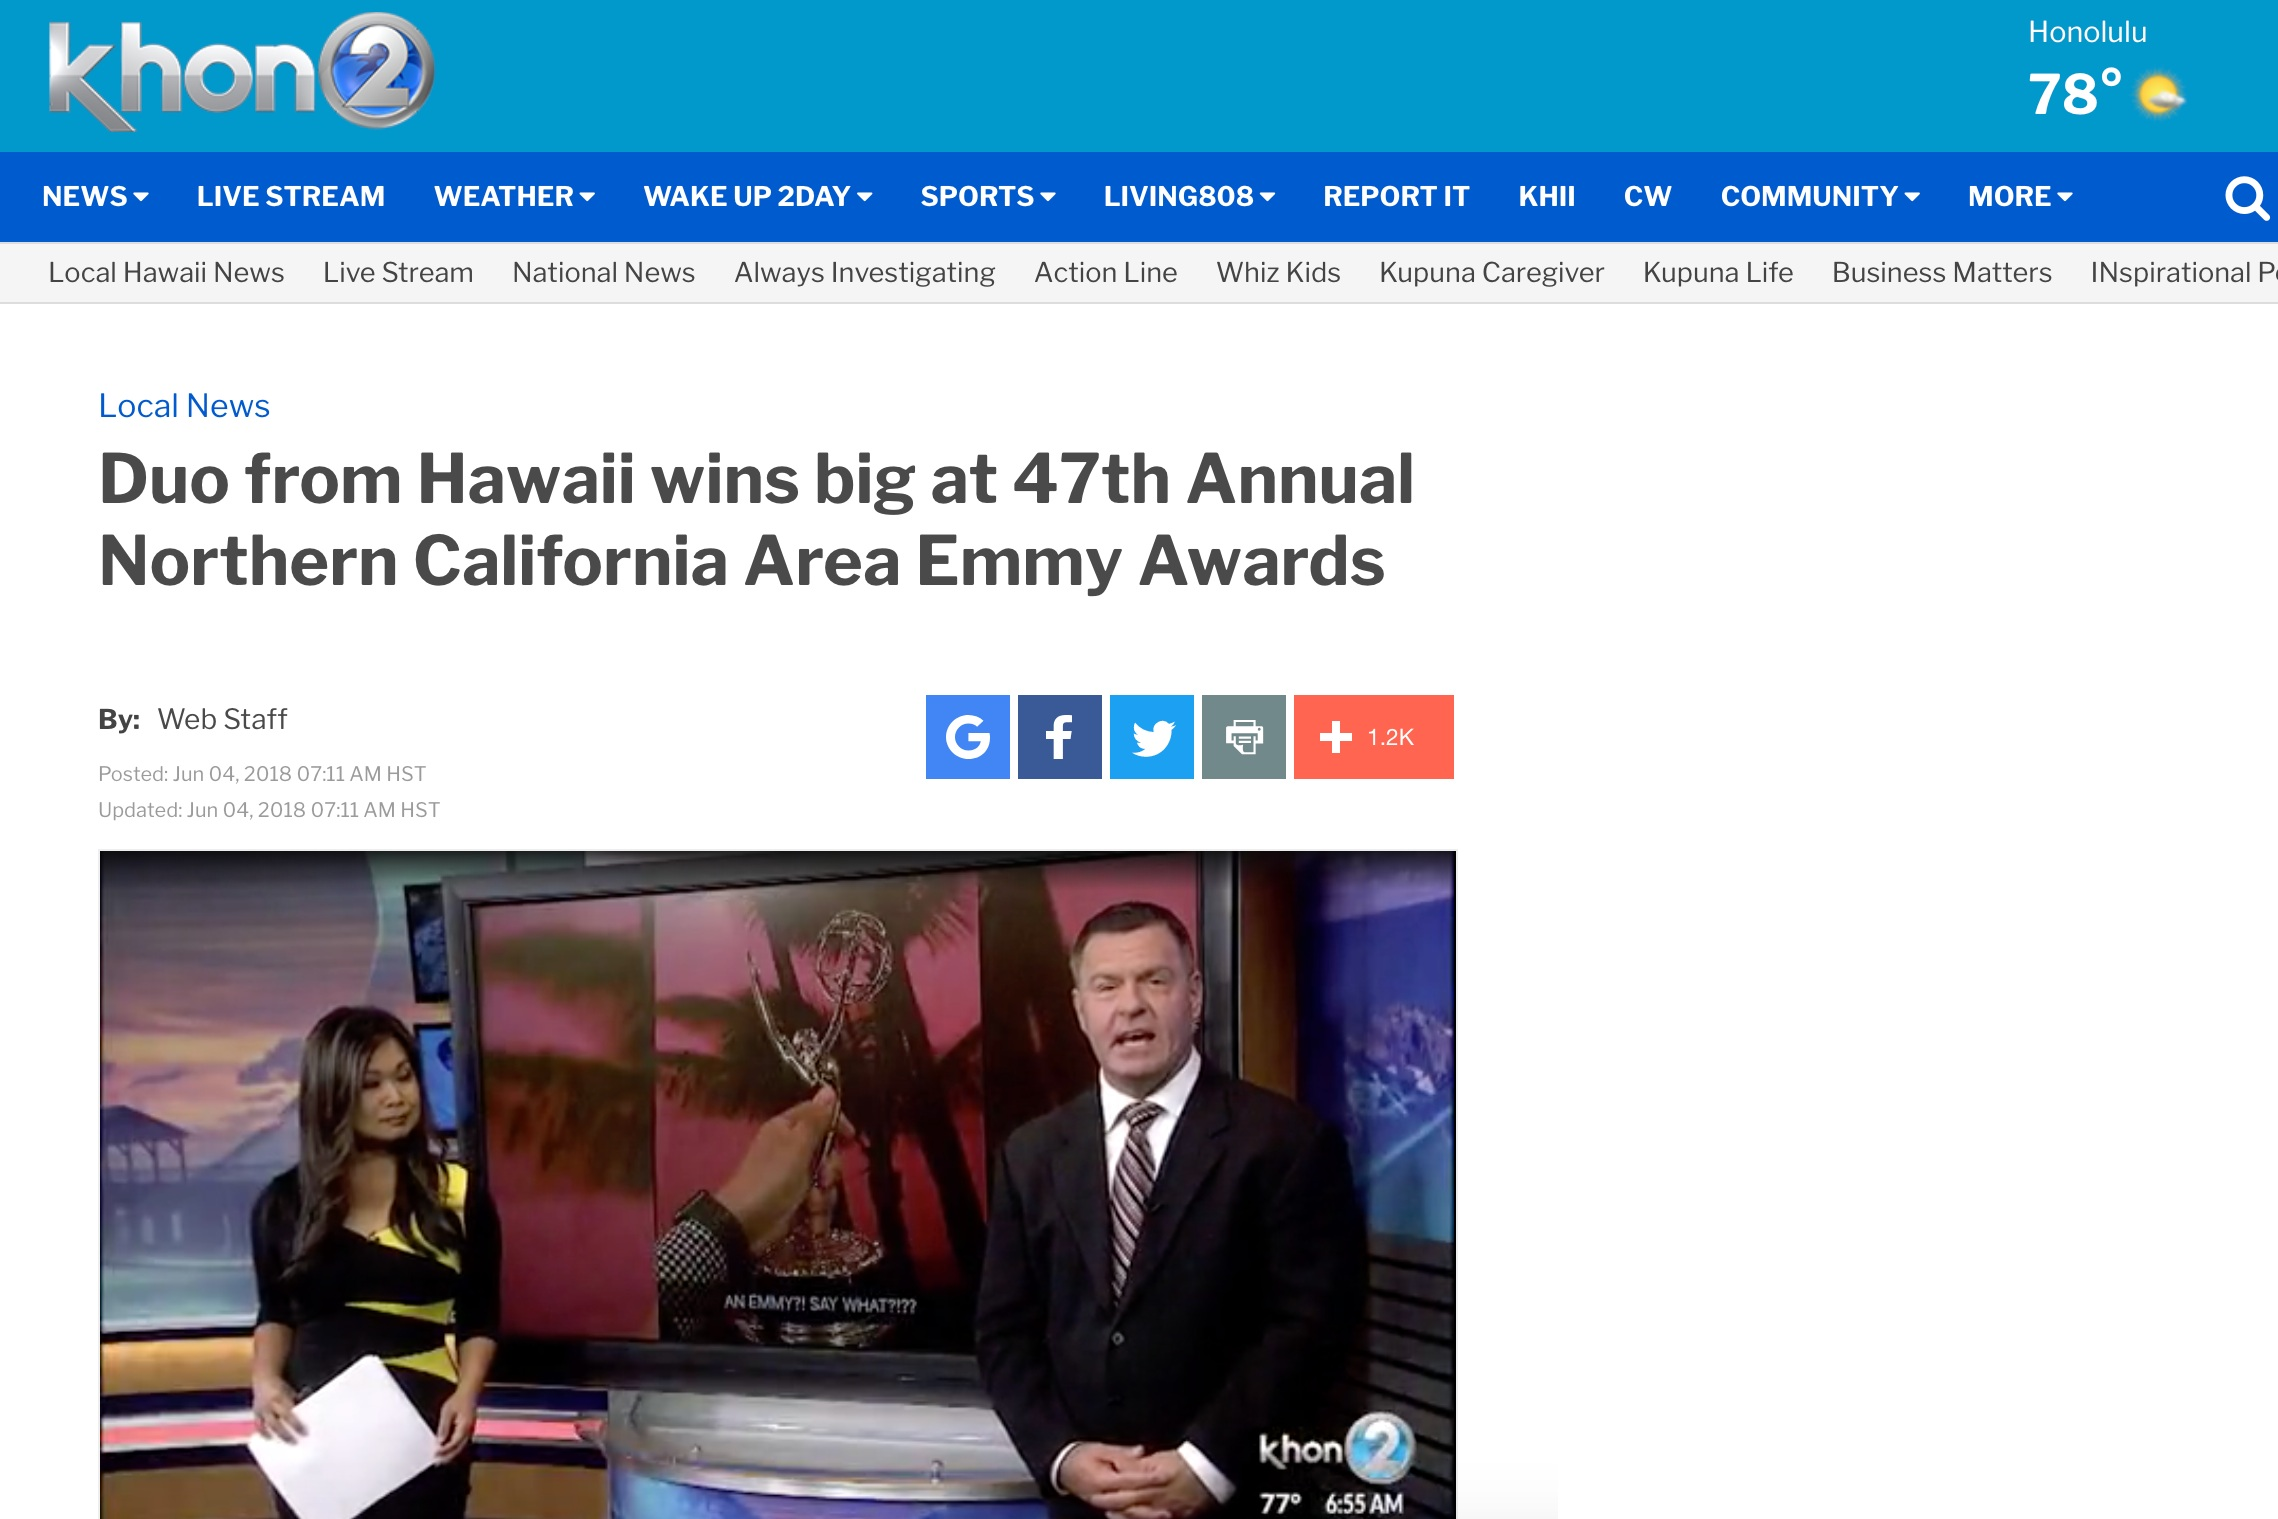 Duo from Hawaii wins big at 47th Annual Northern California Area Emmy Awards  by Khon2